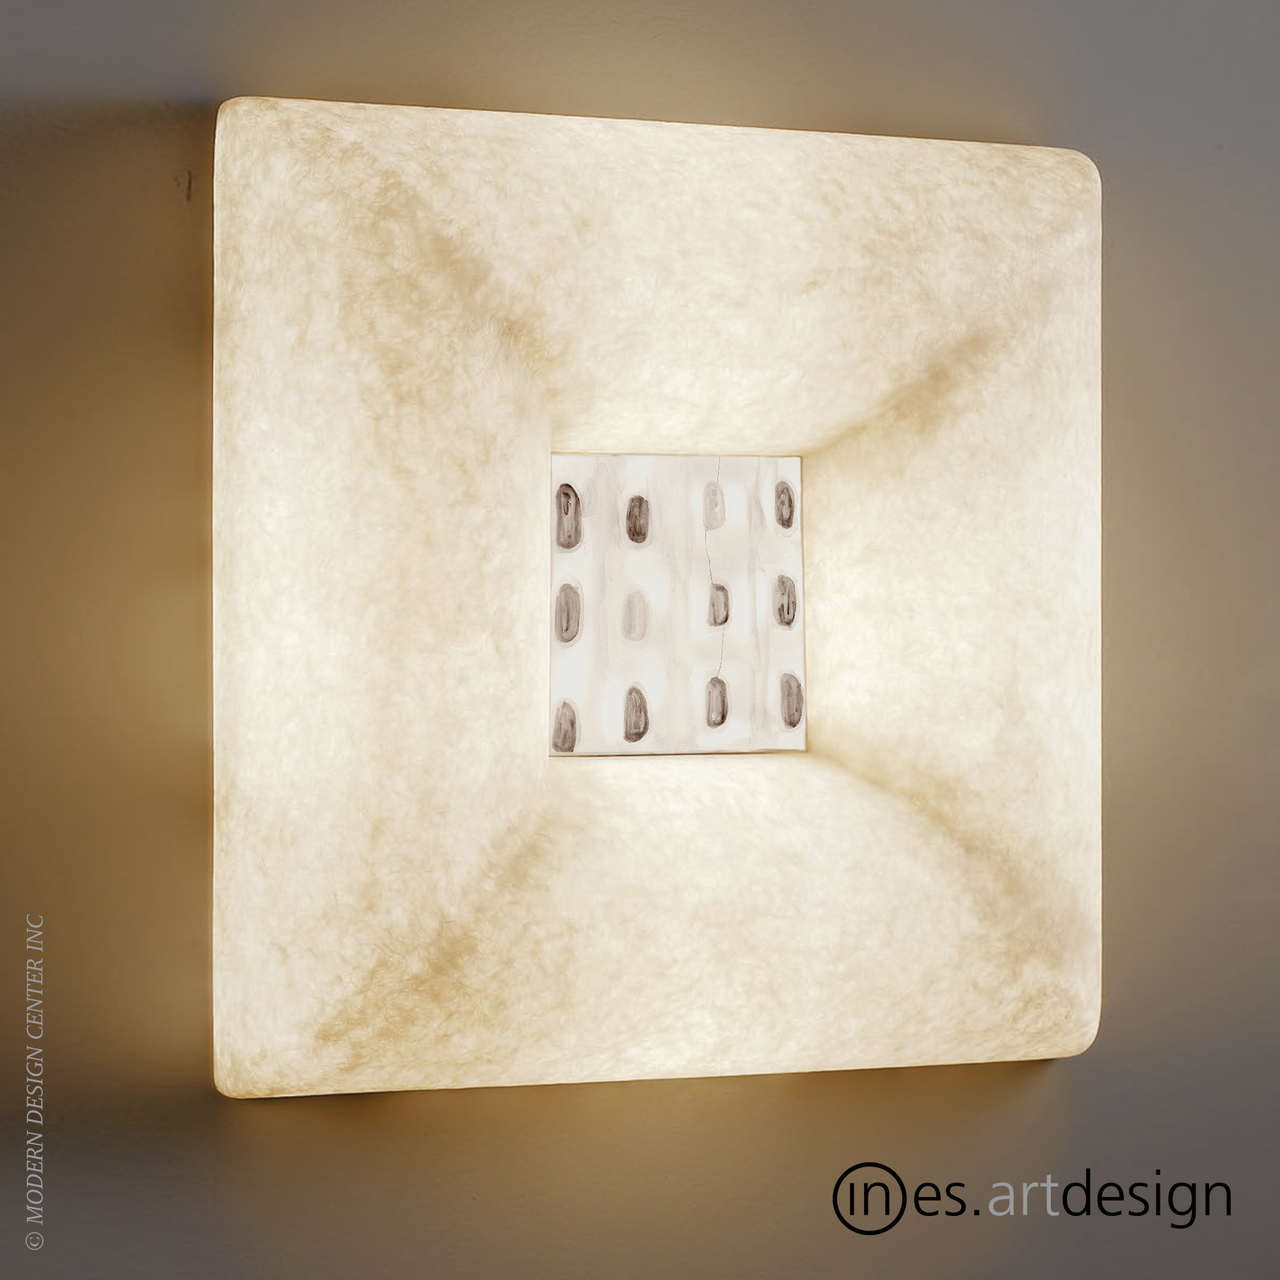 Dada Luna 3 Wall Light | In-es Art Design